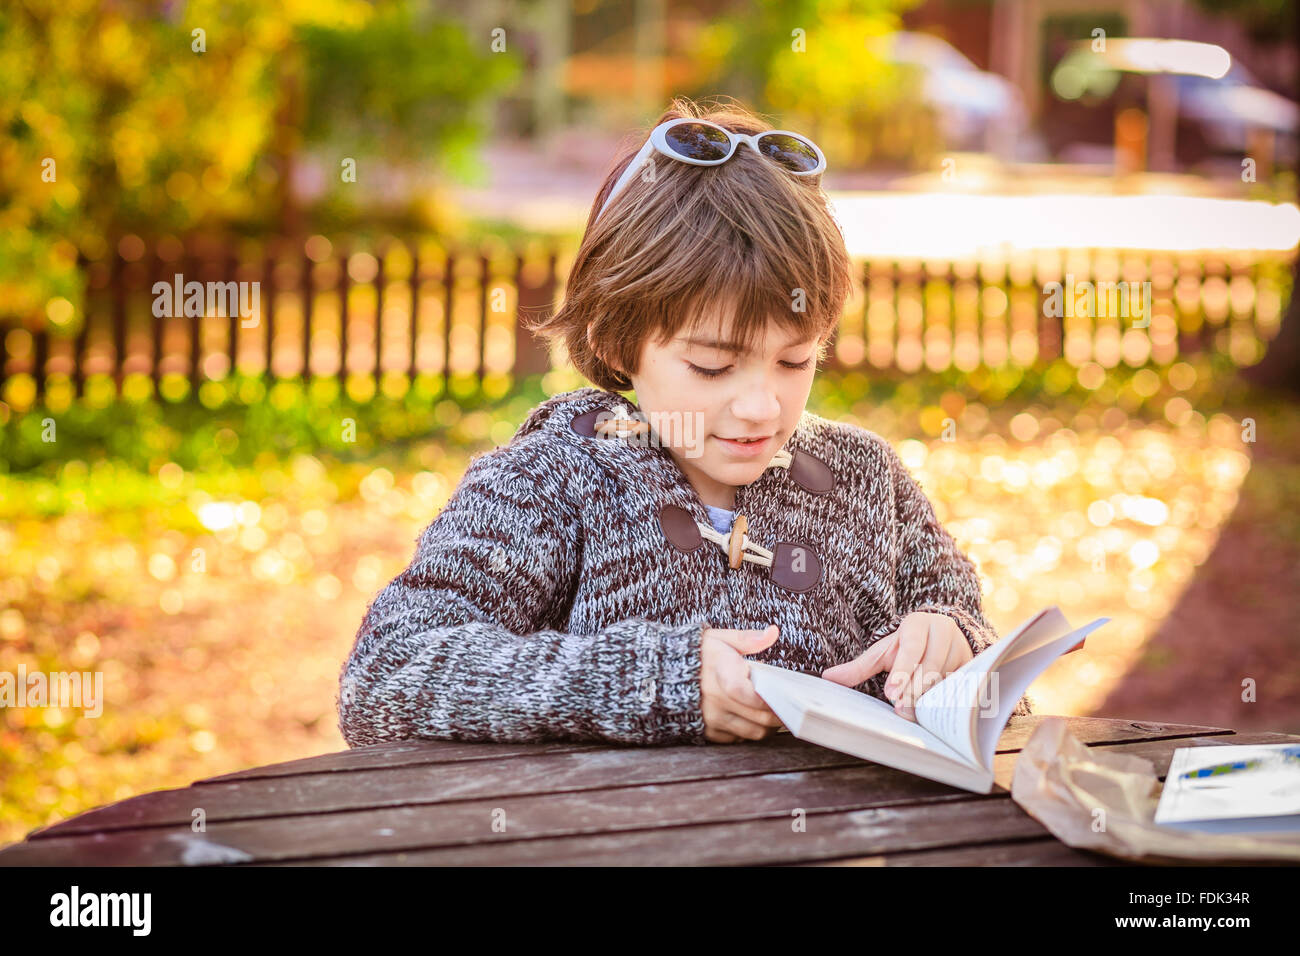 Boy reading a book in the park Banque D'Images